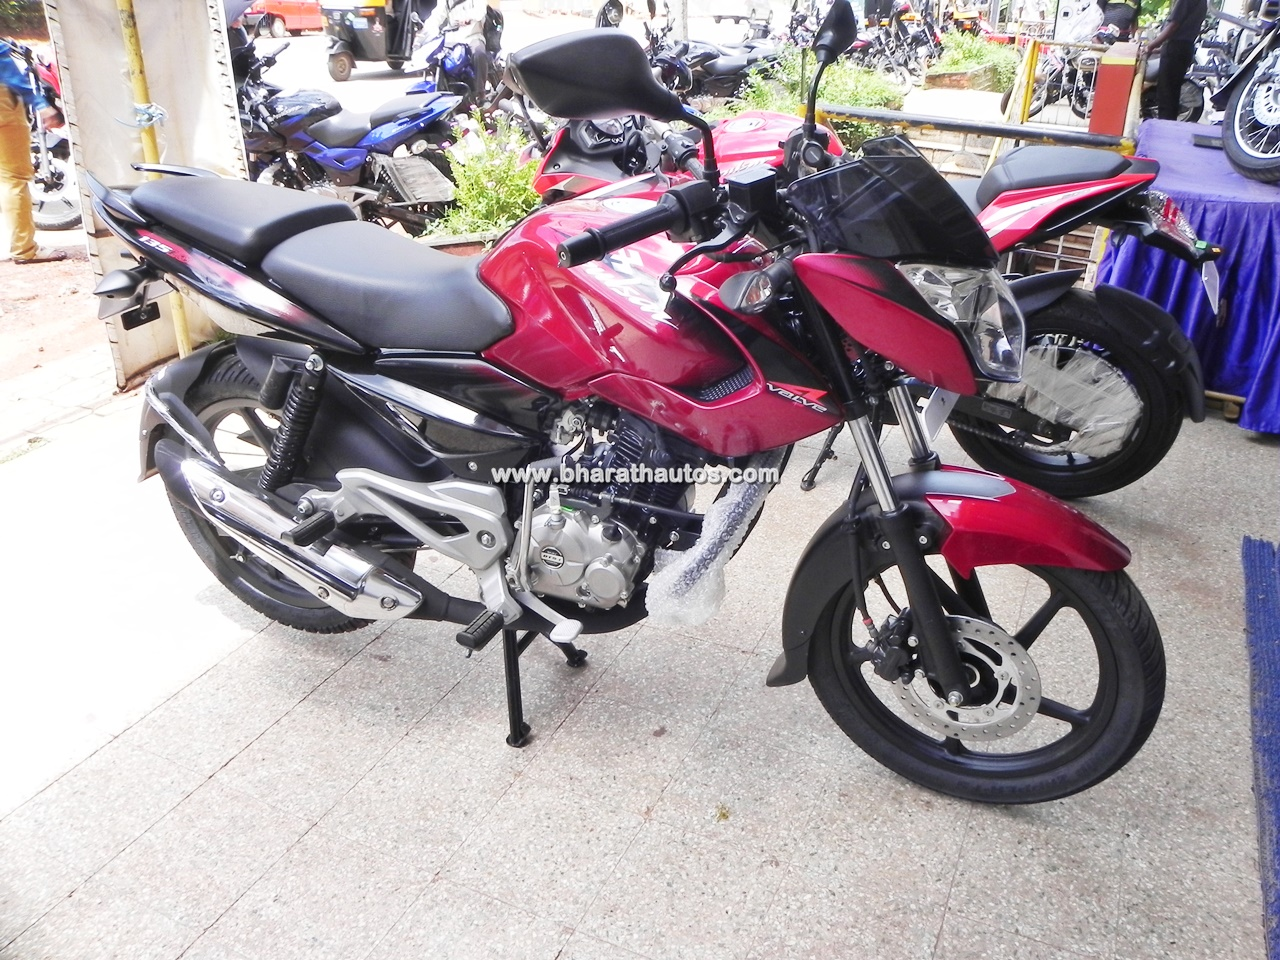 Bajaj pulsar 135 ls cocktail wine red paint shade front pictures photos images snaps